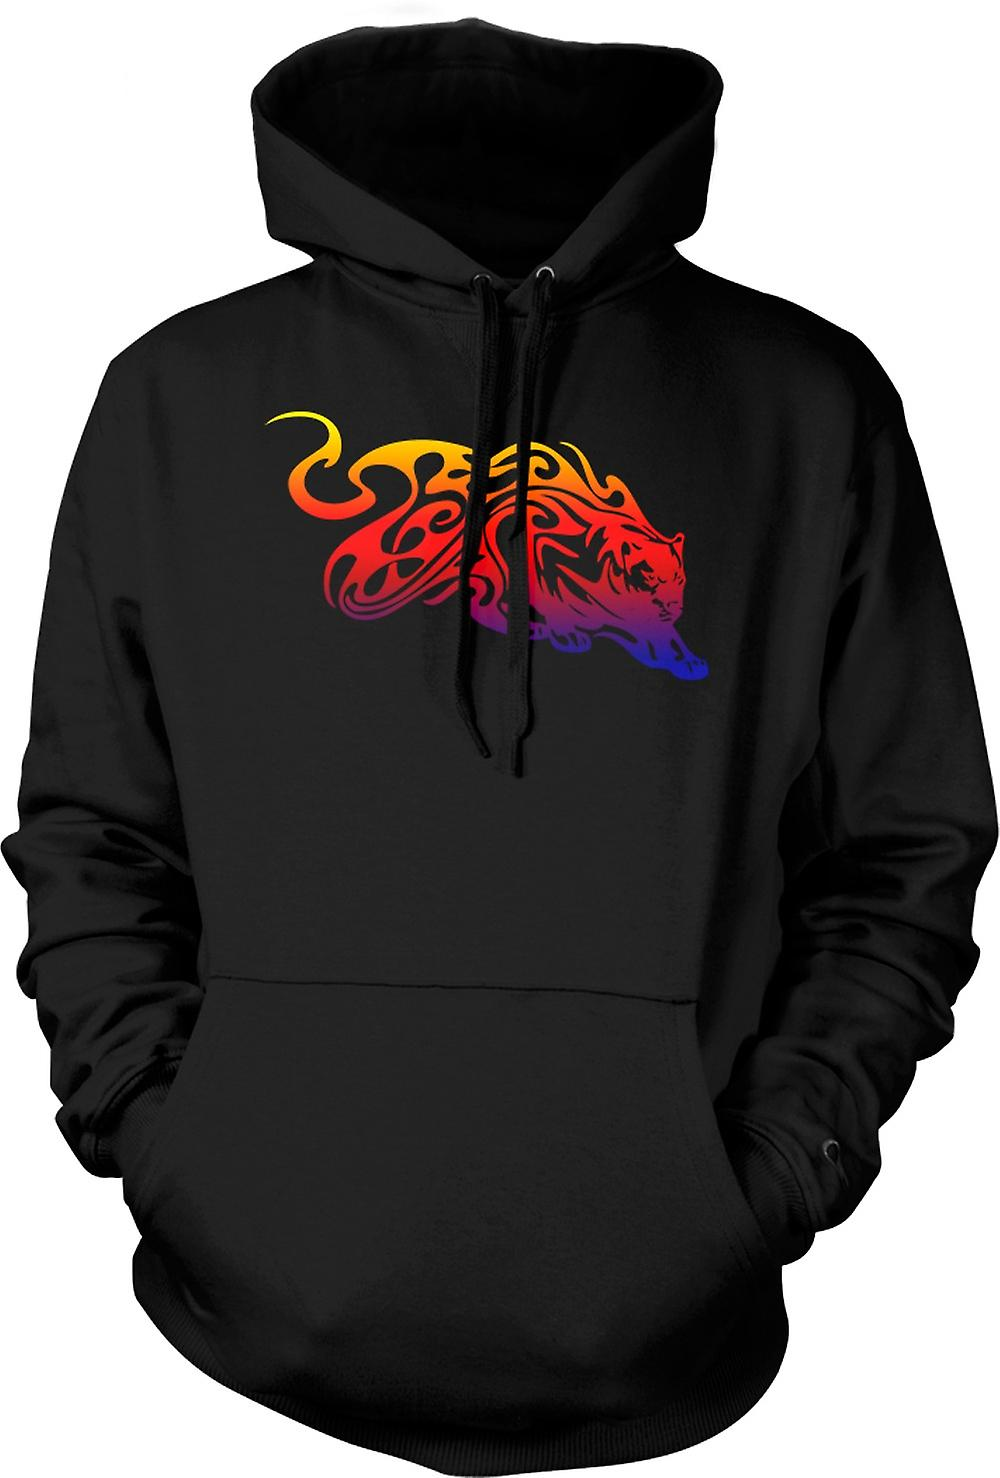 Mens Hoodie - Tribal Tiger With Flames Design